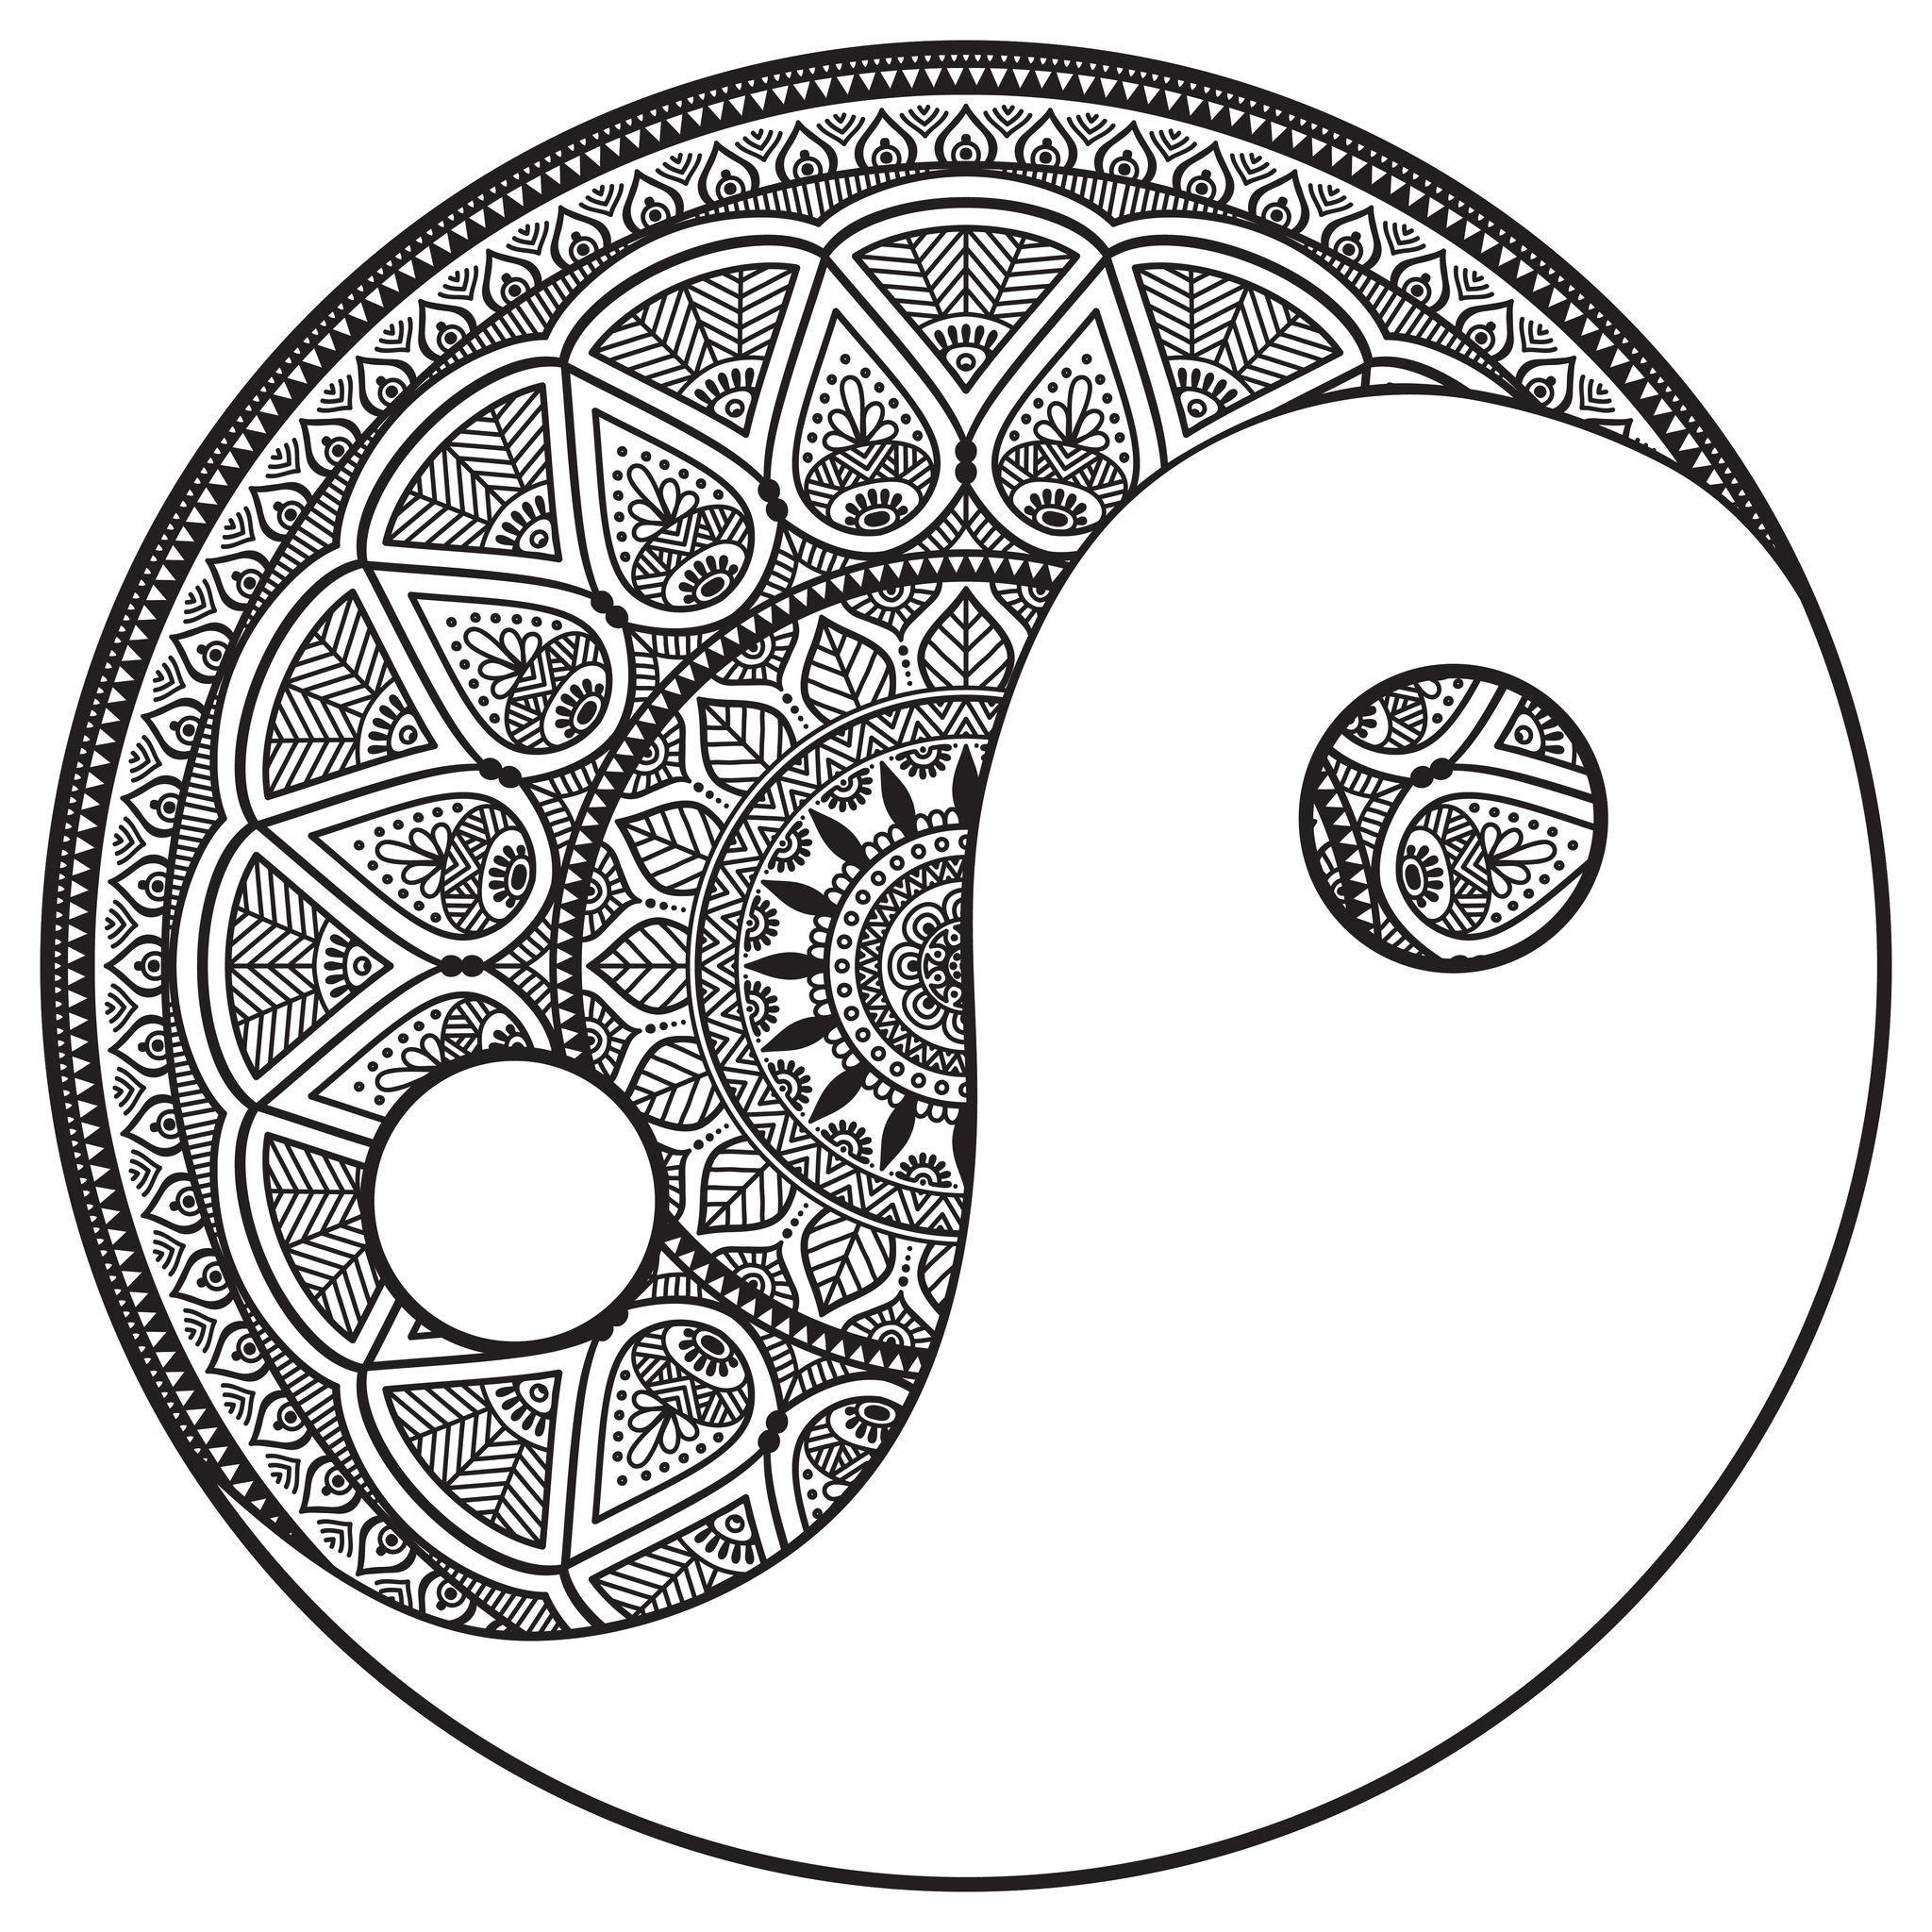 Colouring in pages mandala - Yin And Yang Mandala From The Gallery Mandalas Artist Snezh Source